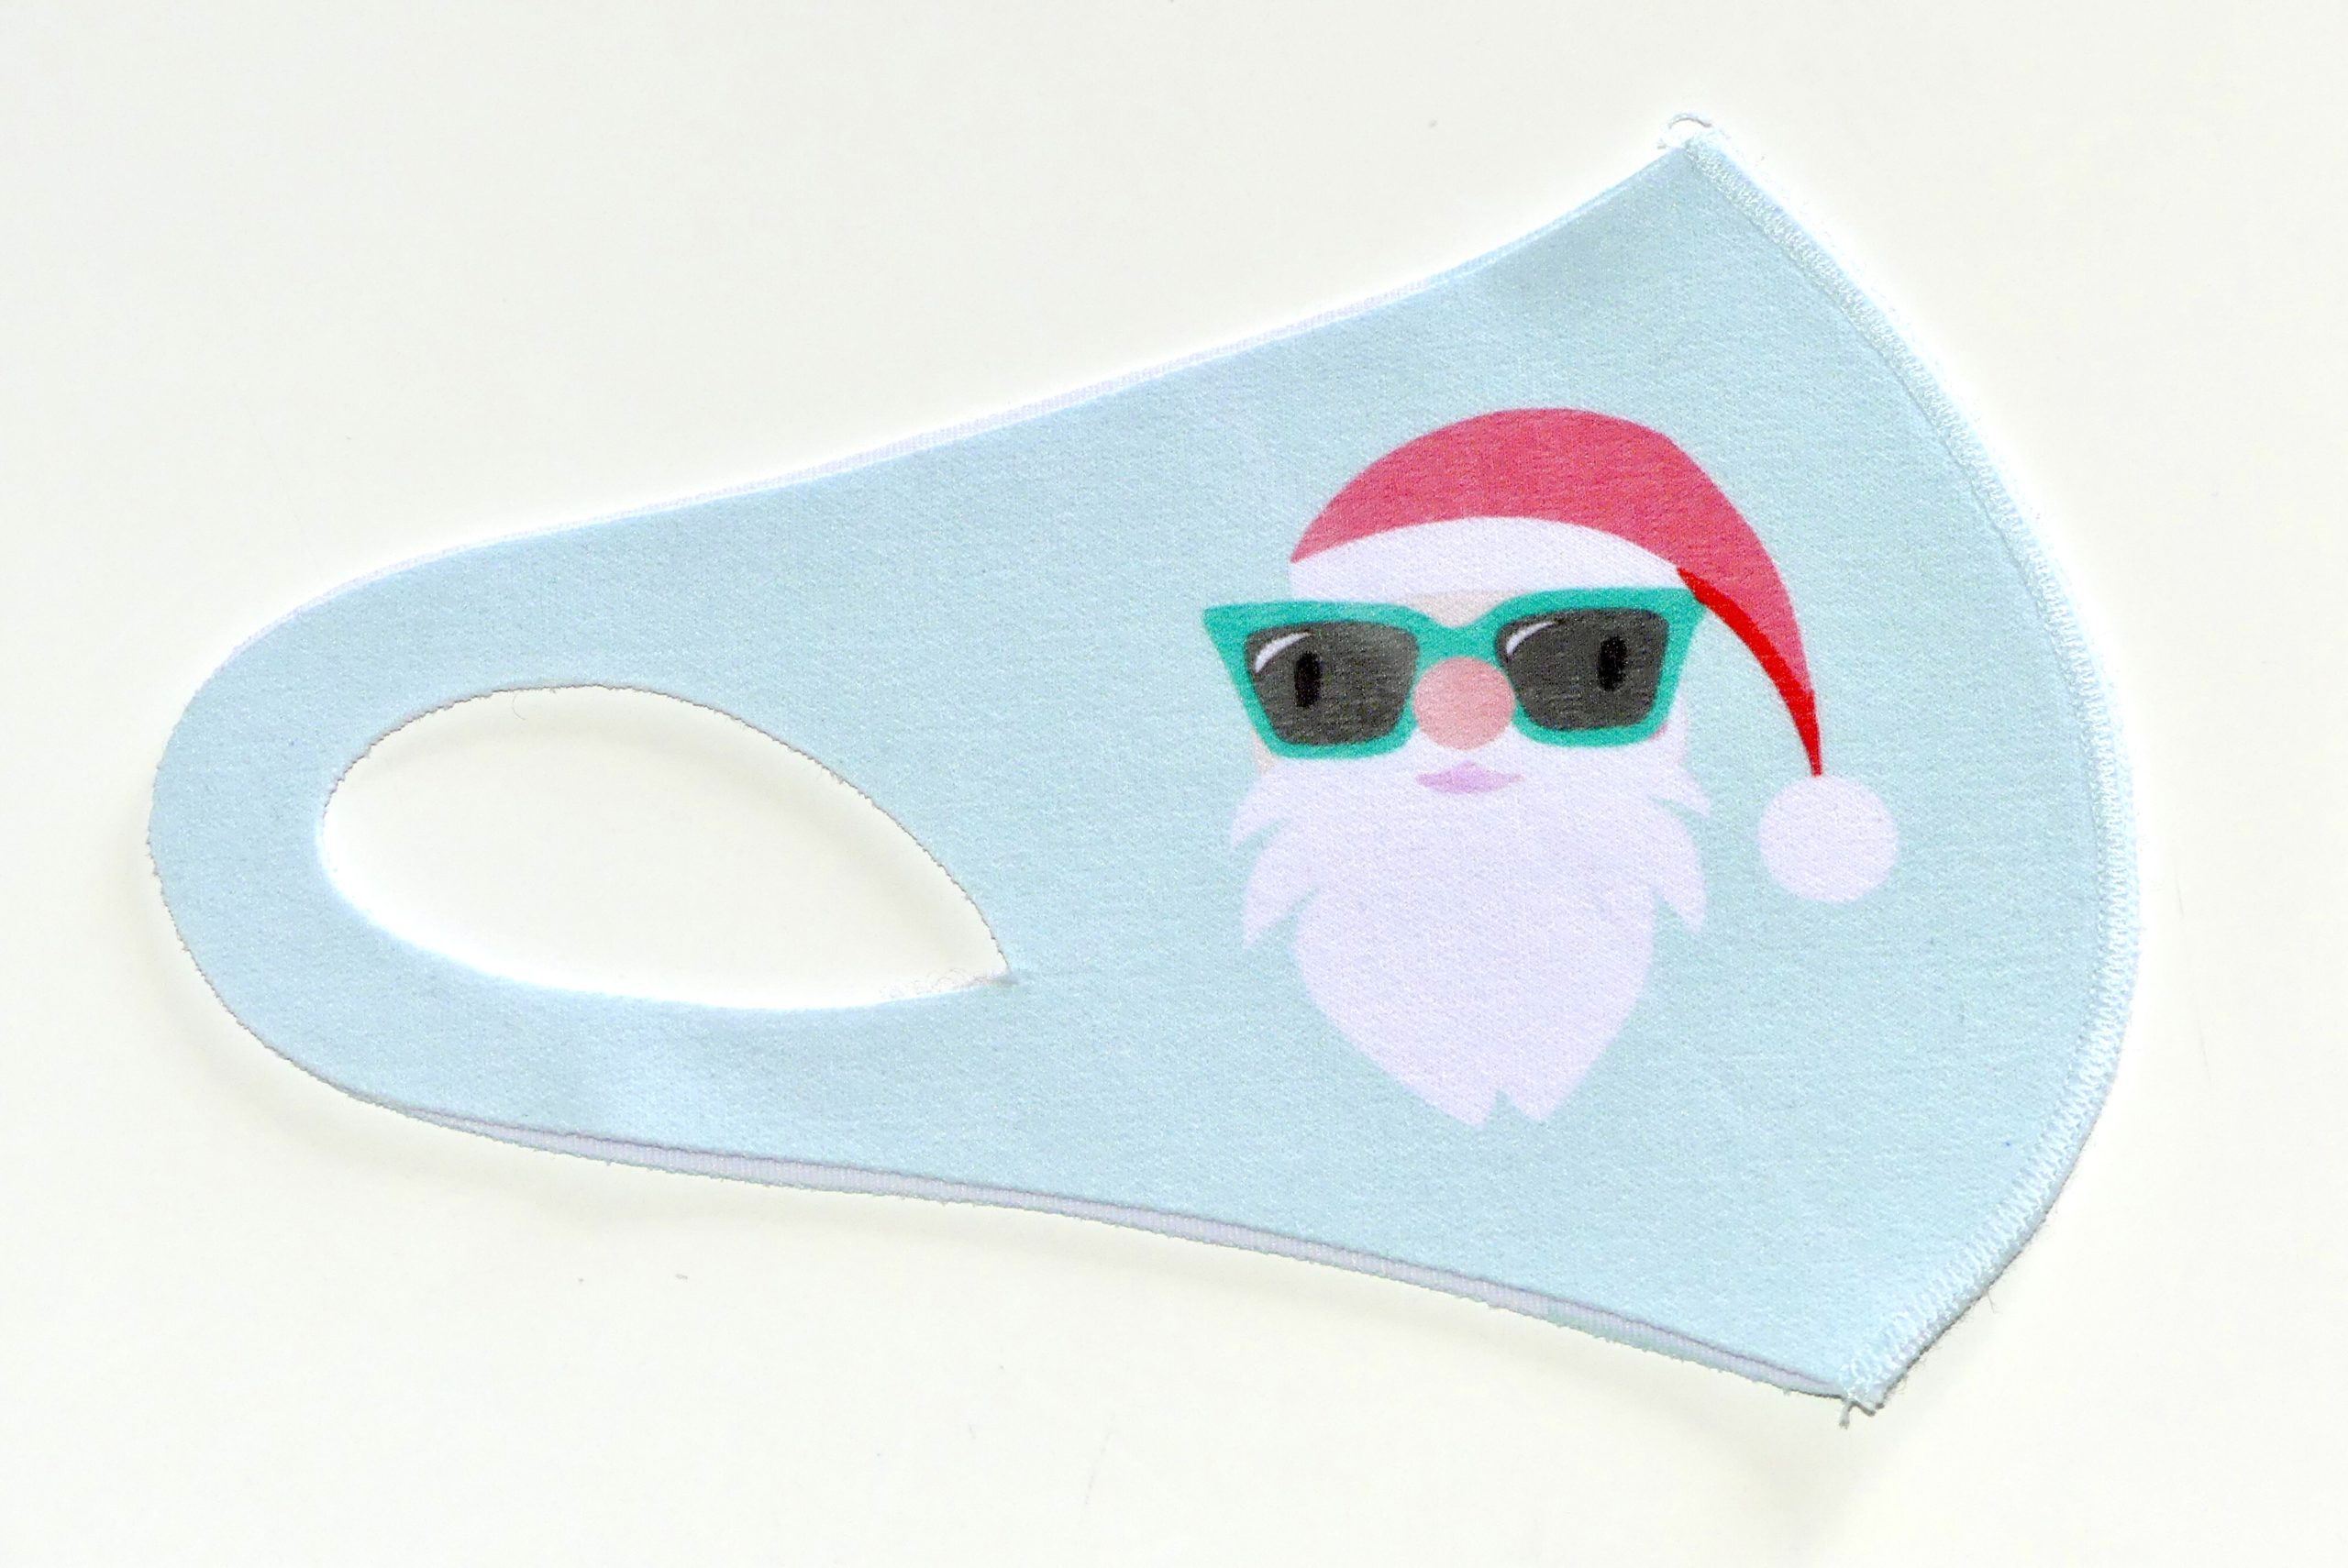 XMAS Limited Edition, Santa's Mask